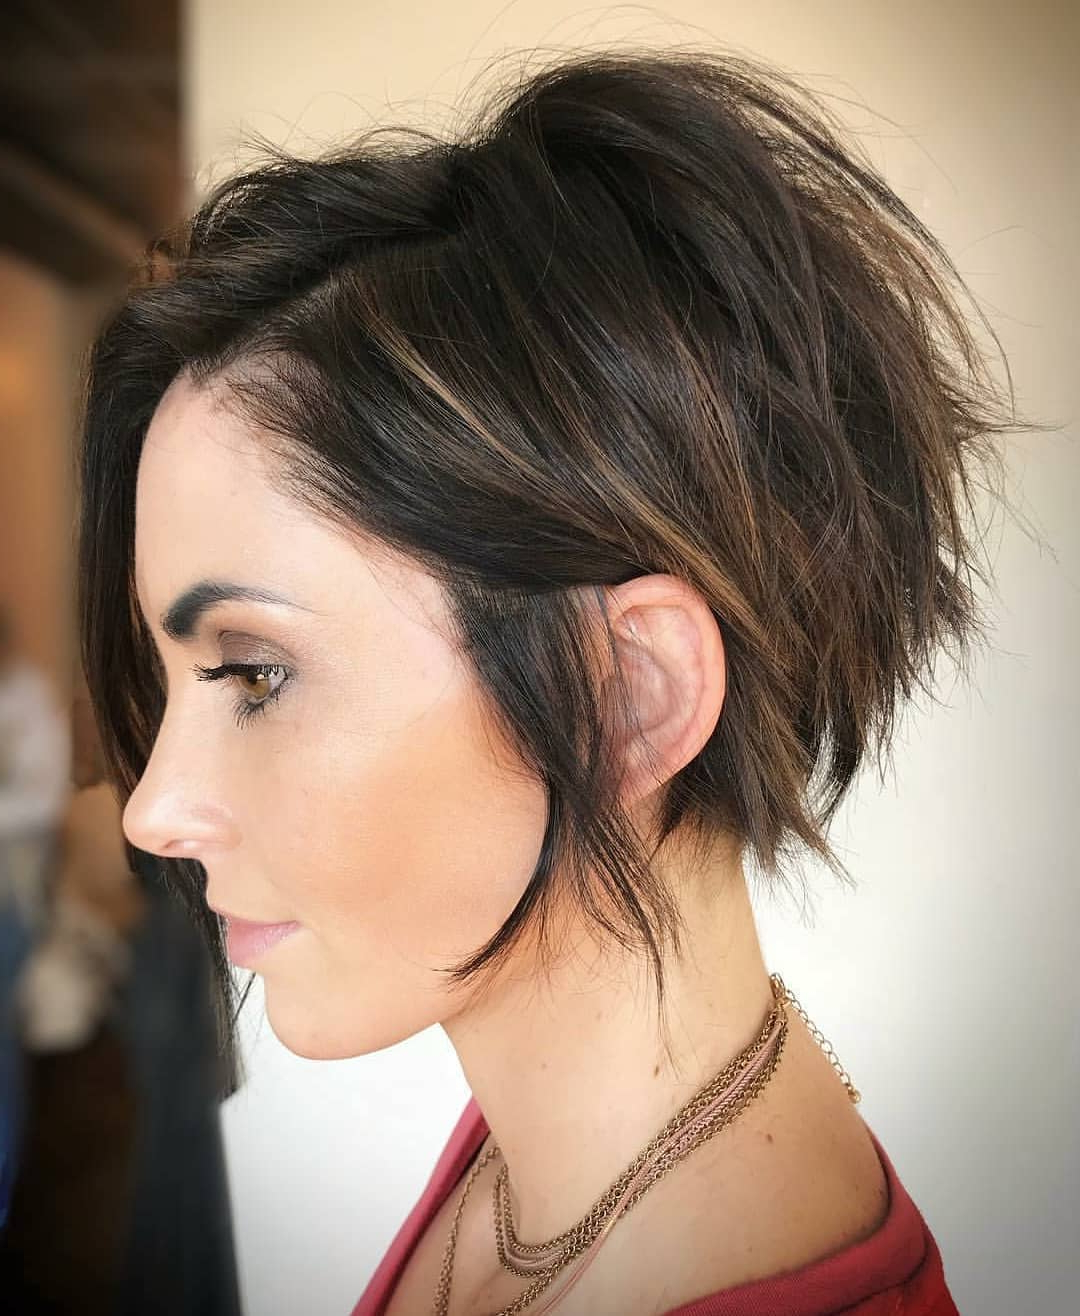 10 Fab Short Hairstyles With Texture & Color, 2018 Women Short Haircuts With Auburn Short Hairstyles (View 14 of 25)